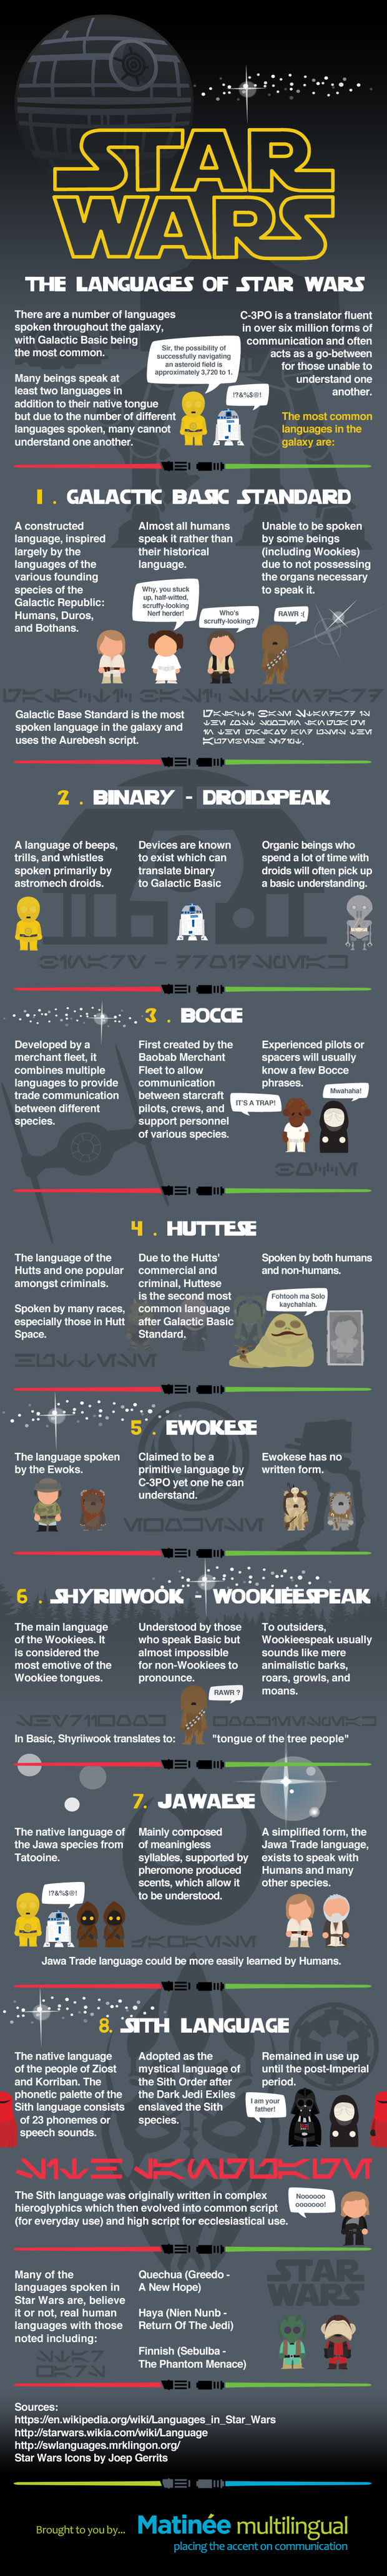 the-languages-of-star-wars1